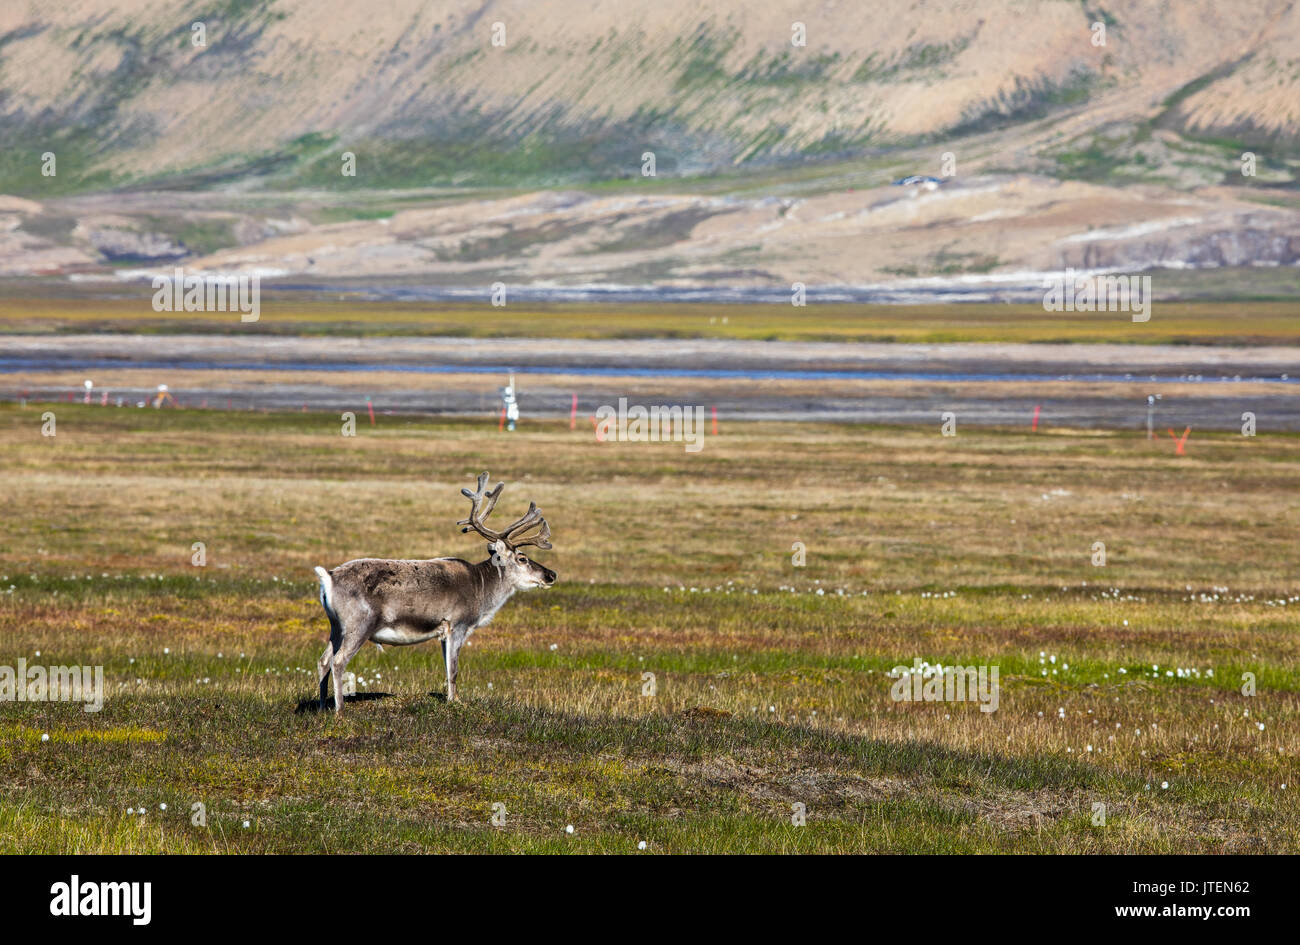 Svalbard reindeer standing on the tundra in summer at Svalbard - Stock Image